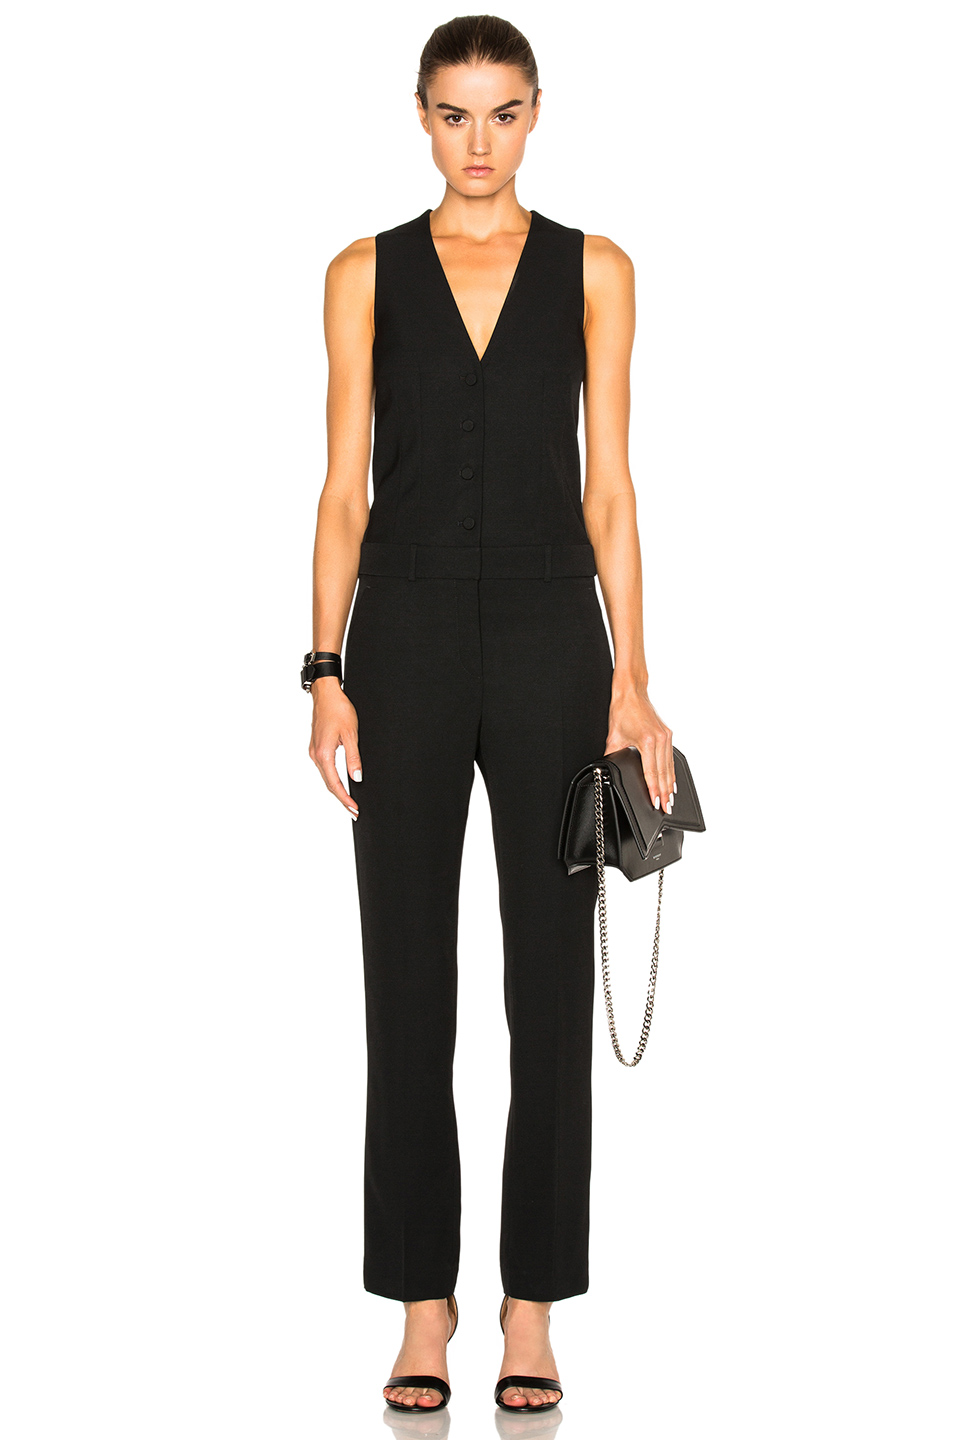 Givenchy Crepe Satin Jumpsuit in Black